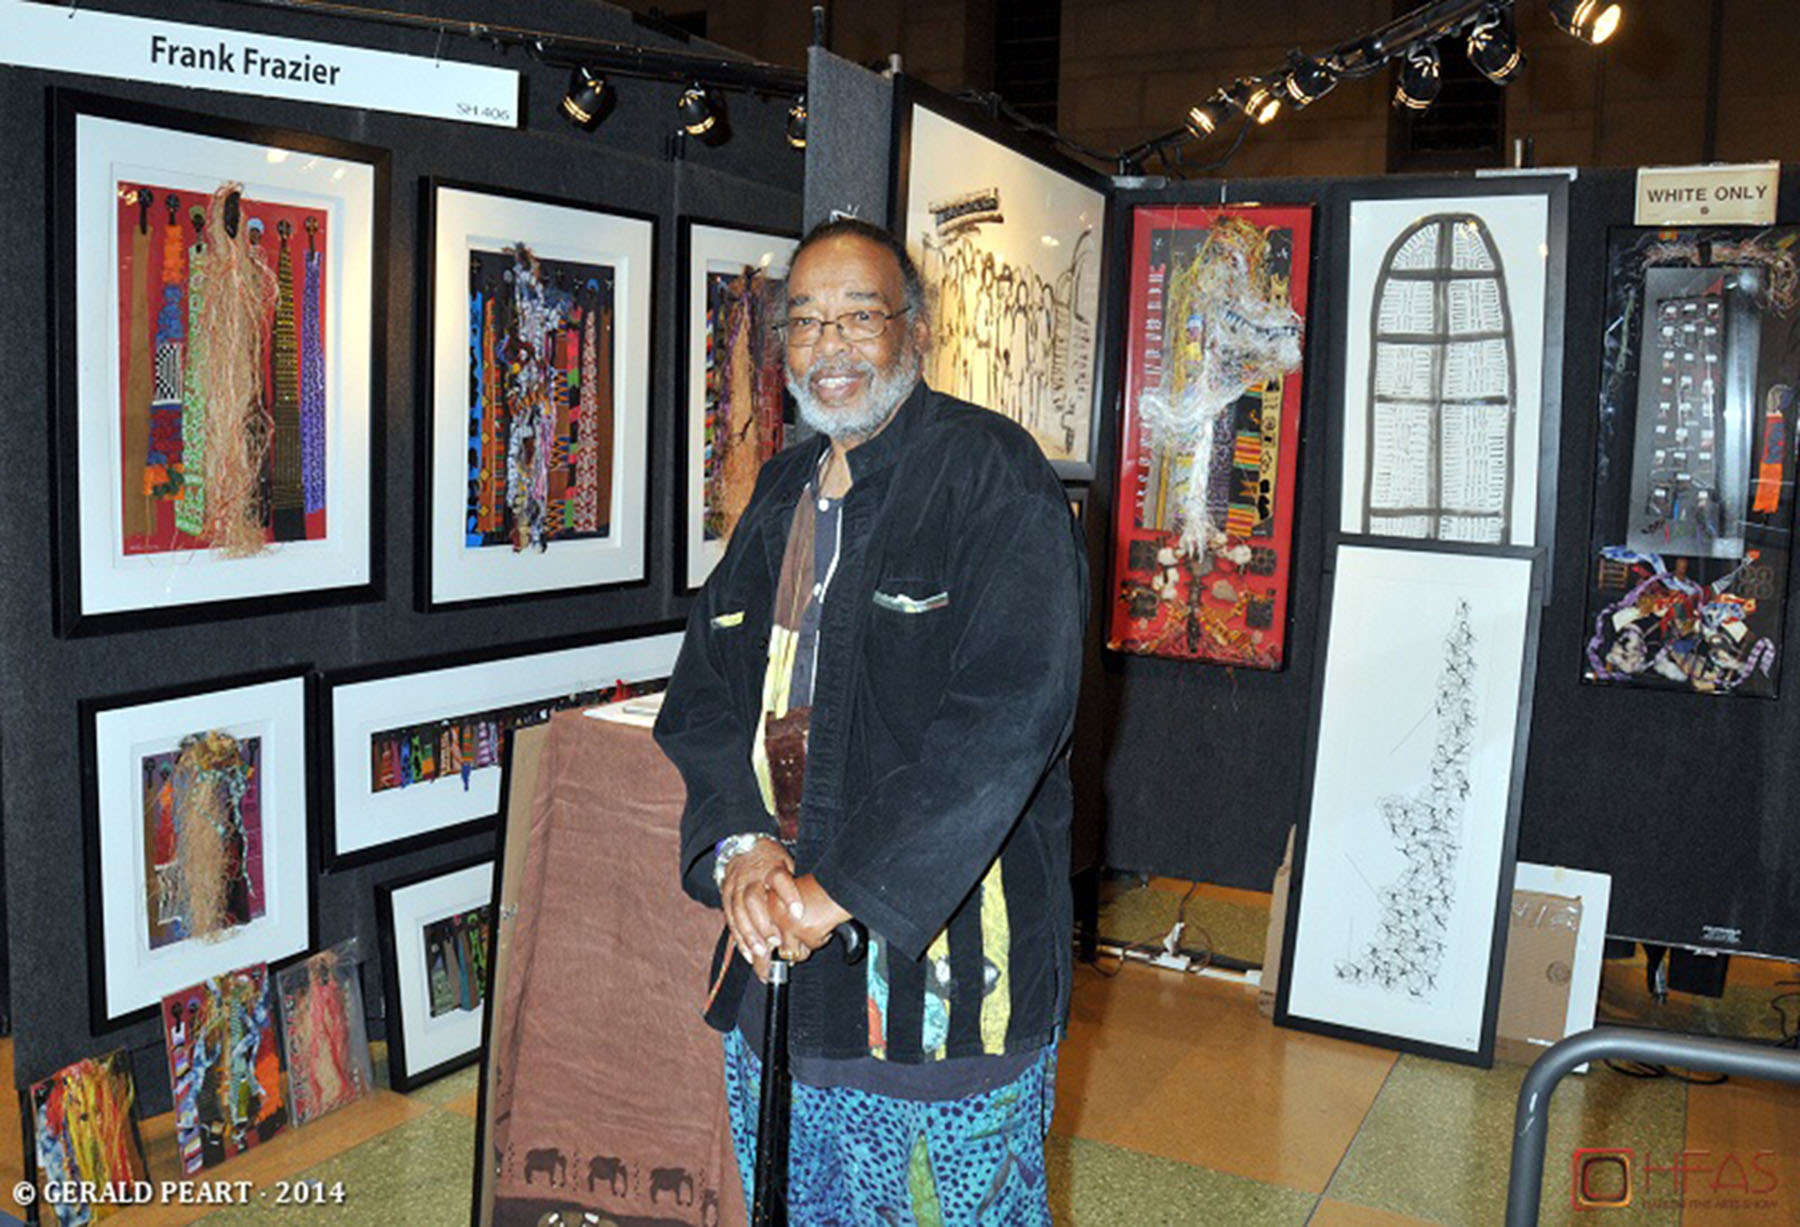 THE HARLEM FINE ART SHOW: It's Not Just A Black Thing